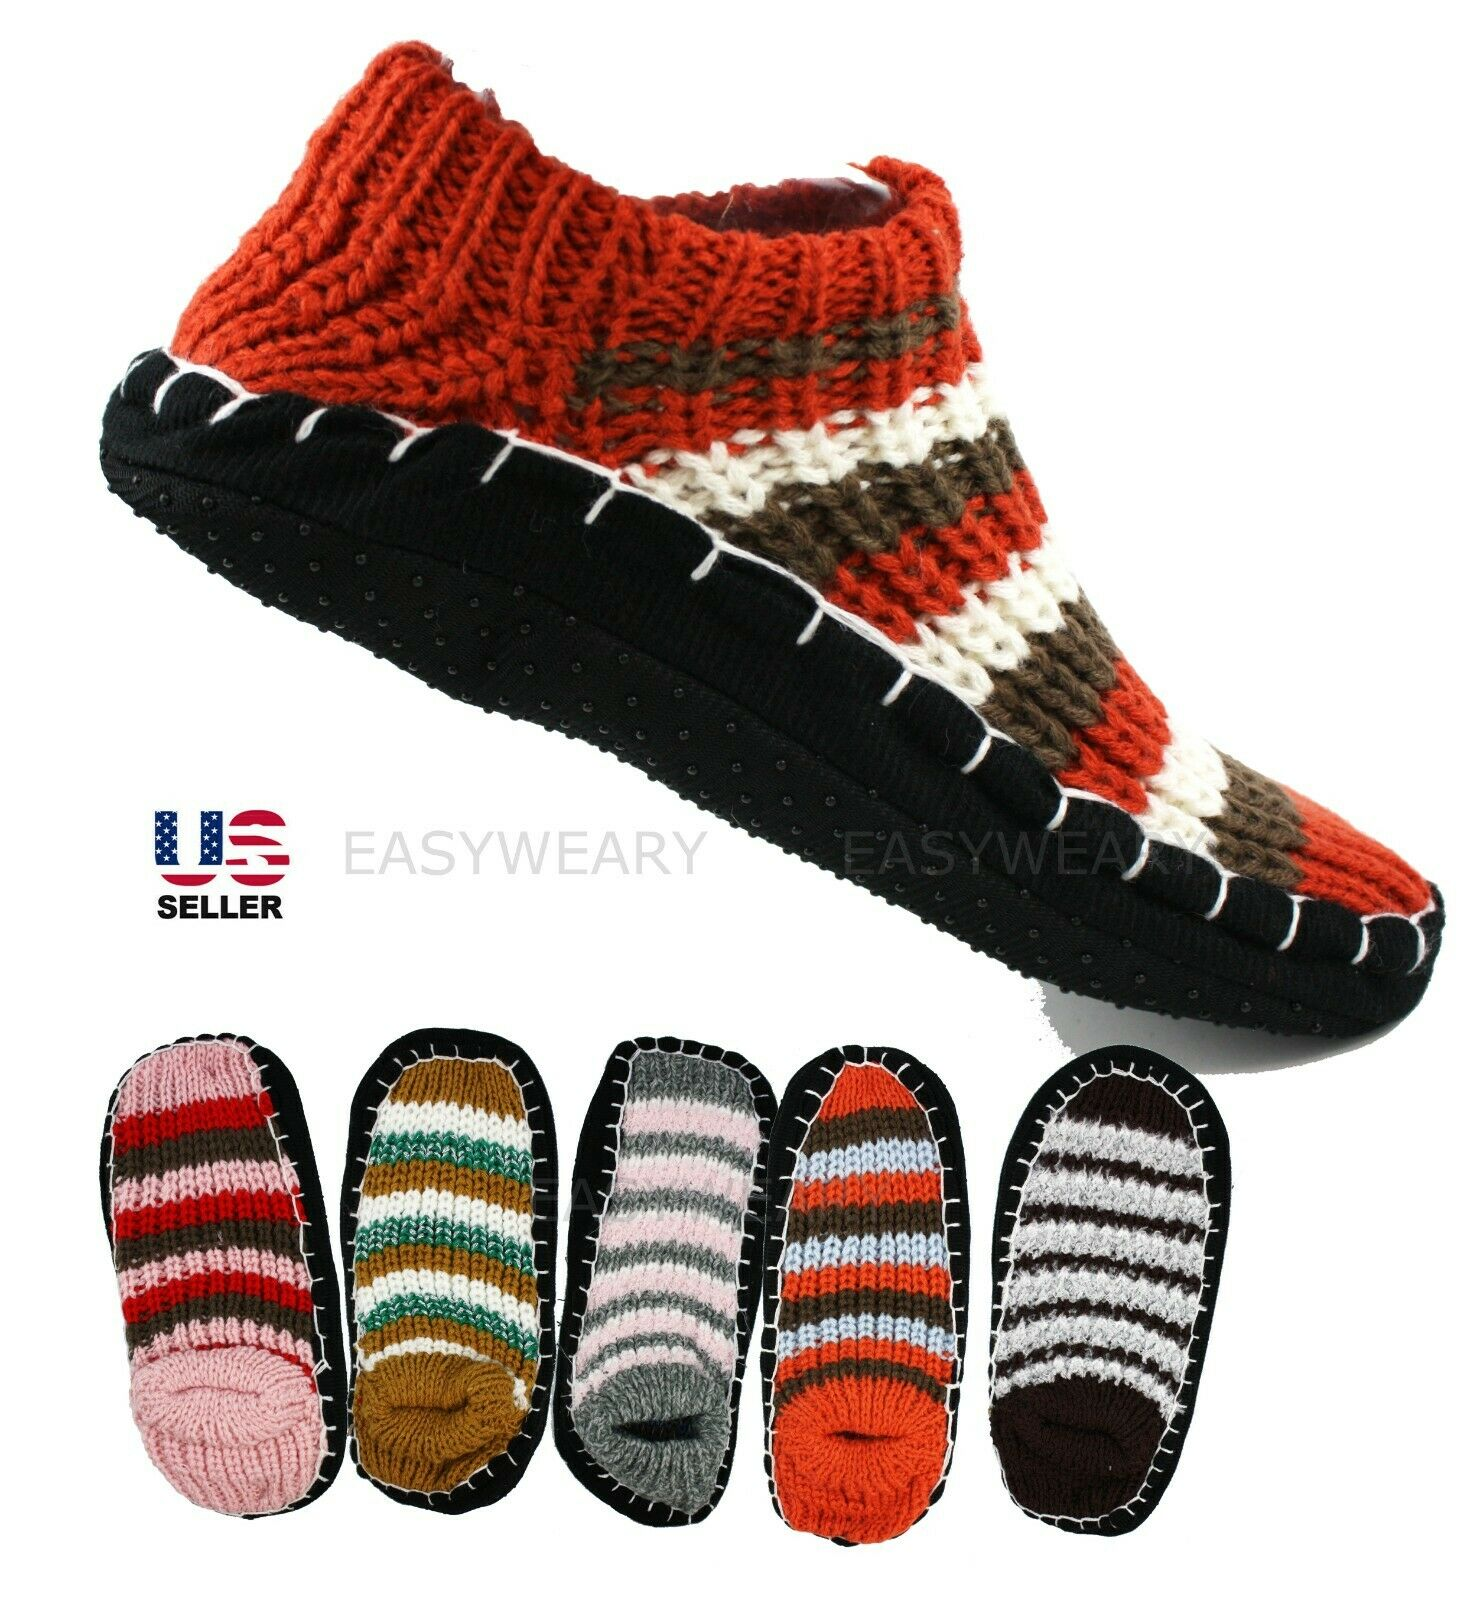 Lot 2 Pairs Women Woven Knit Slip-On Slippers Socks Shoes No